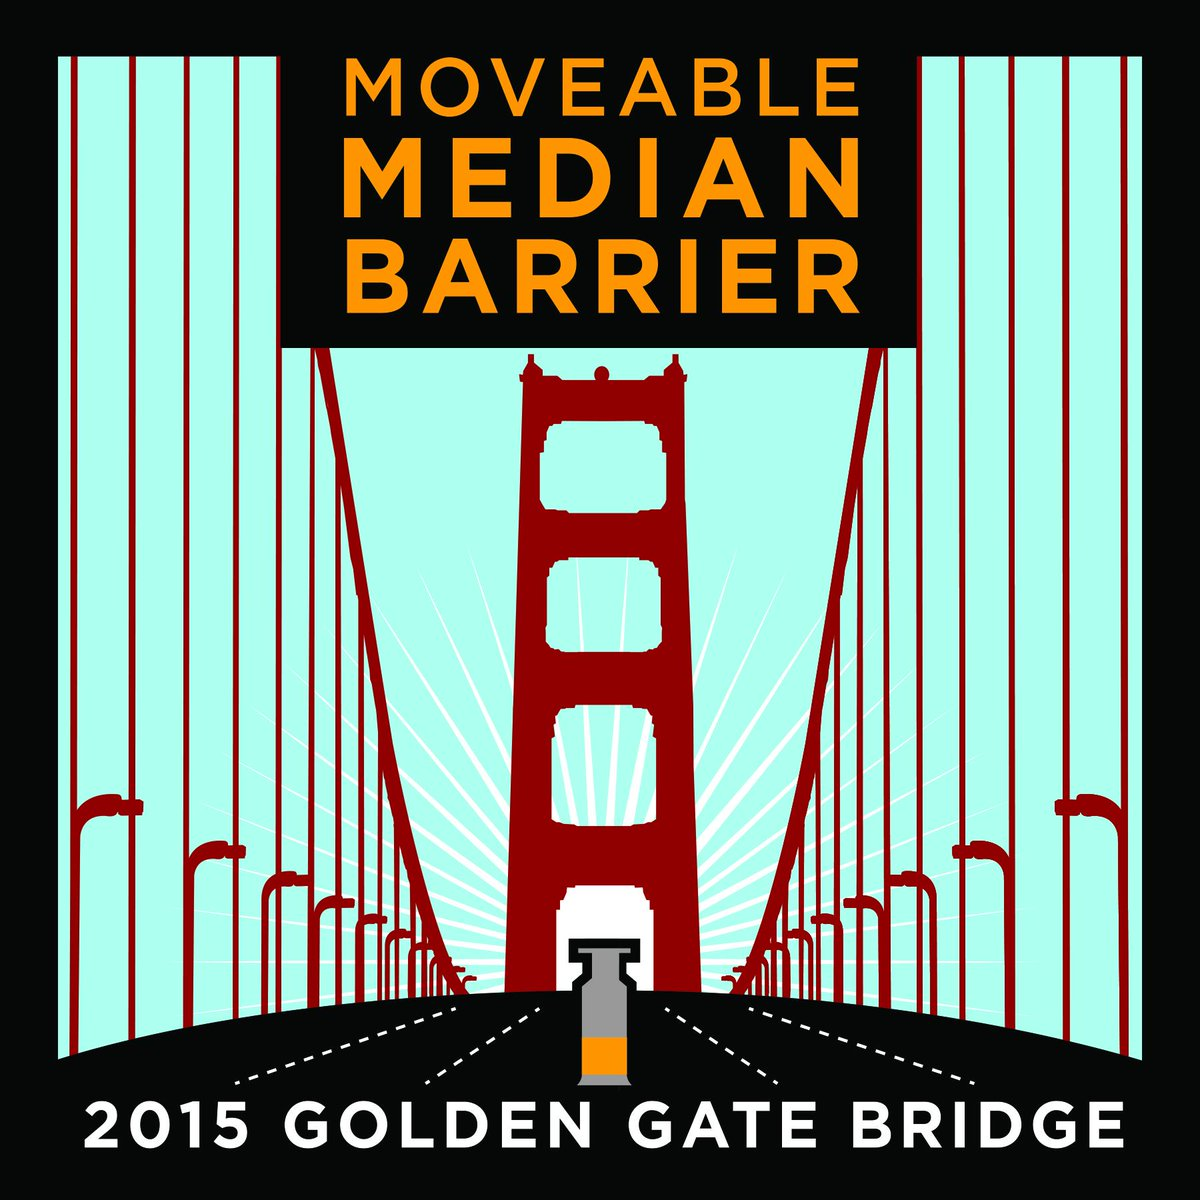 REMINDER: GGB closes at 12mid tonight & will reopen at 4AM on Monday. Complete details here: http://t.co/udplabnYaQ http://t.co/aO82iFtstK